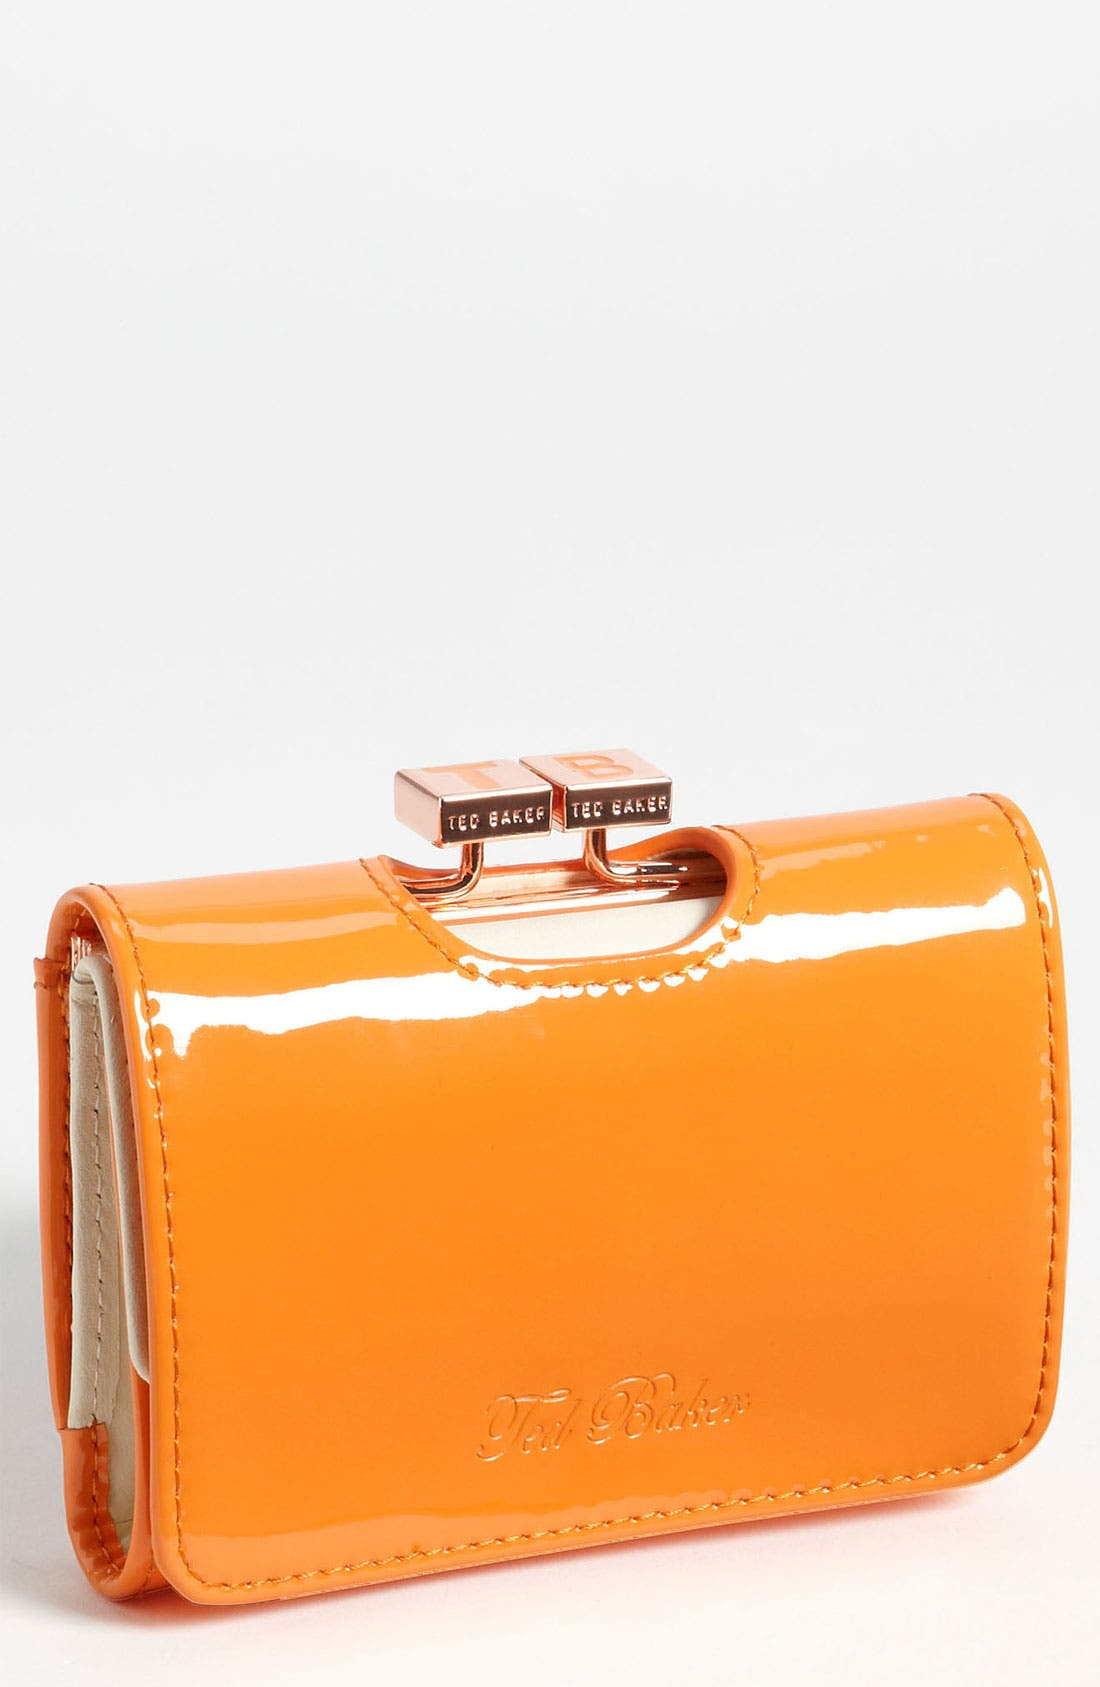 Alternate Image 1 Selected - Ted Baker London 'Small' Patent Leather Wallet